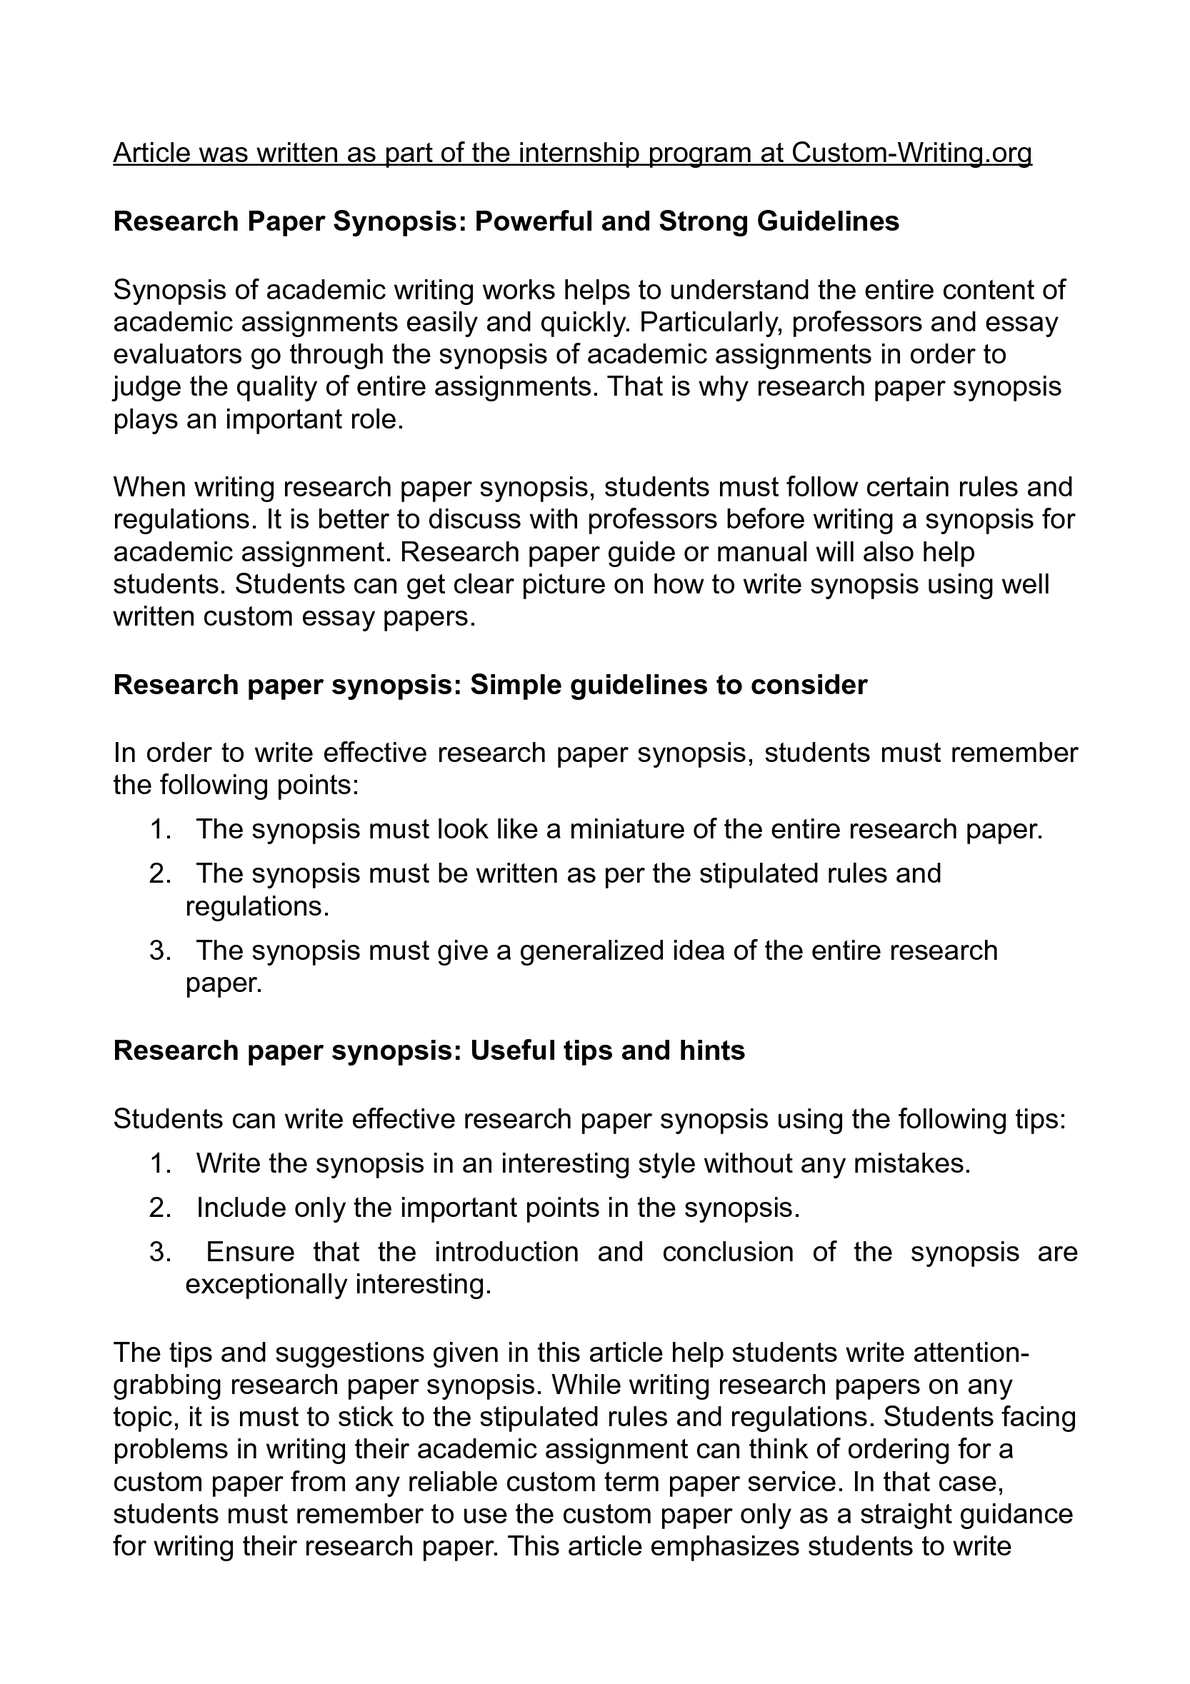 Calaméo - Research Paper Synopsis: Powerful and Strong Guidelines